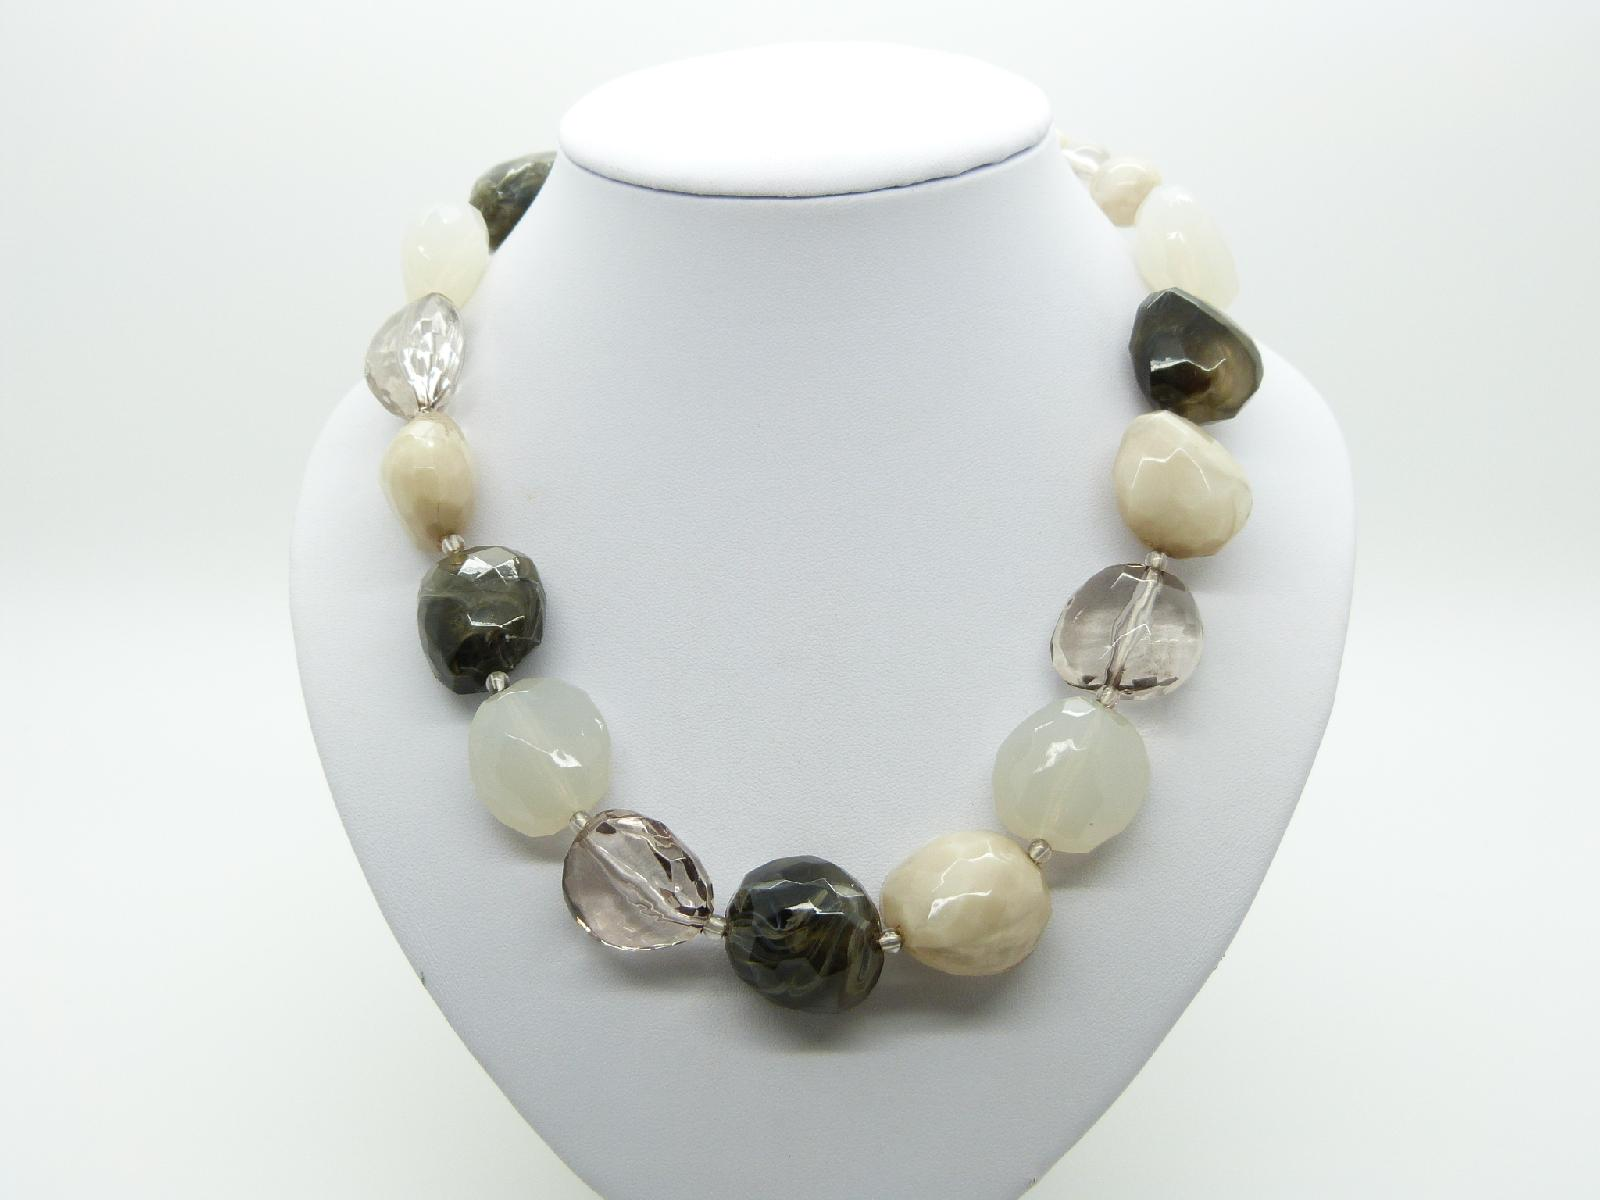 Lovely Chunky Four Colour Neutral Tones Lucite Plastic Faceted Bead Necklace 47cms